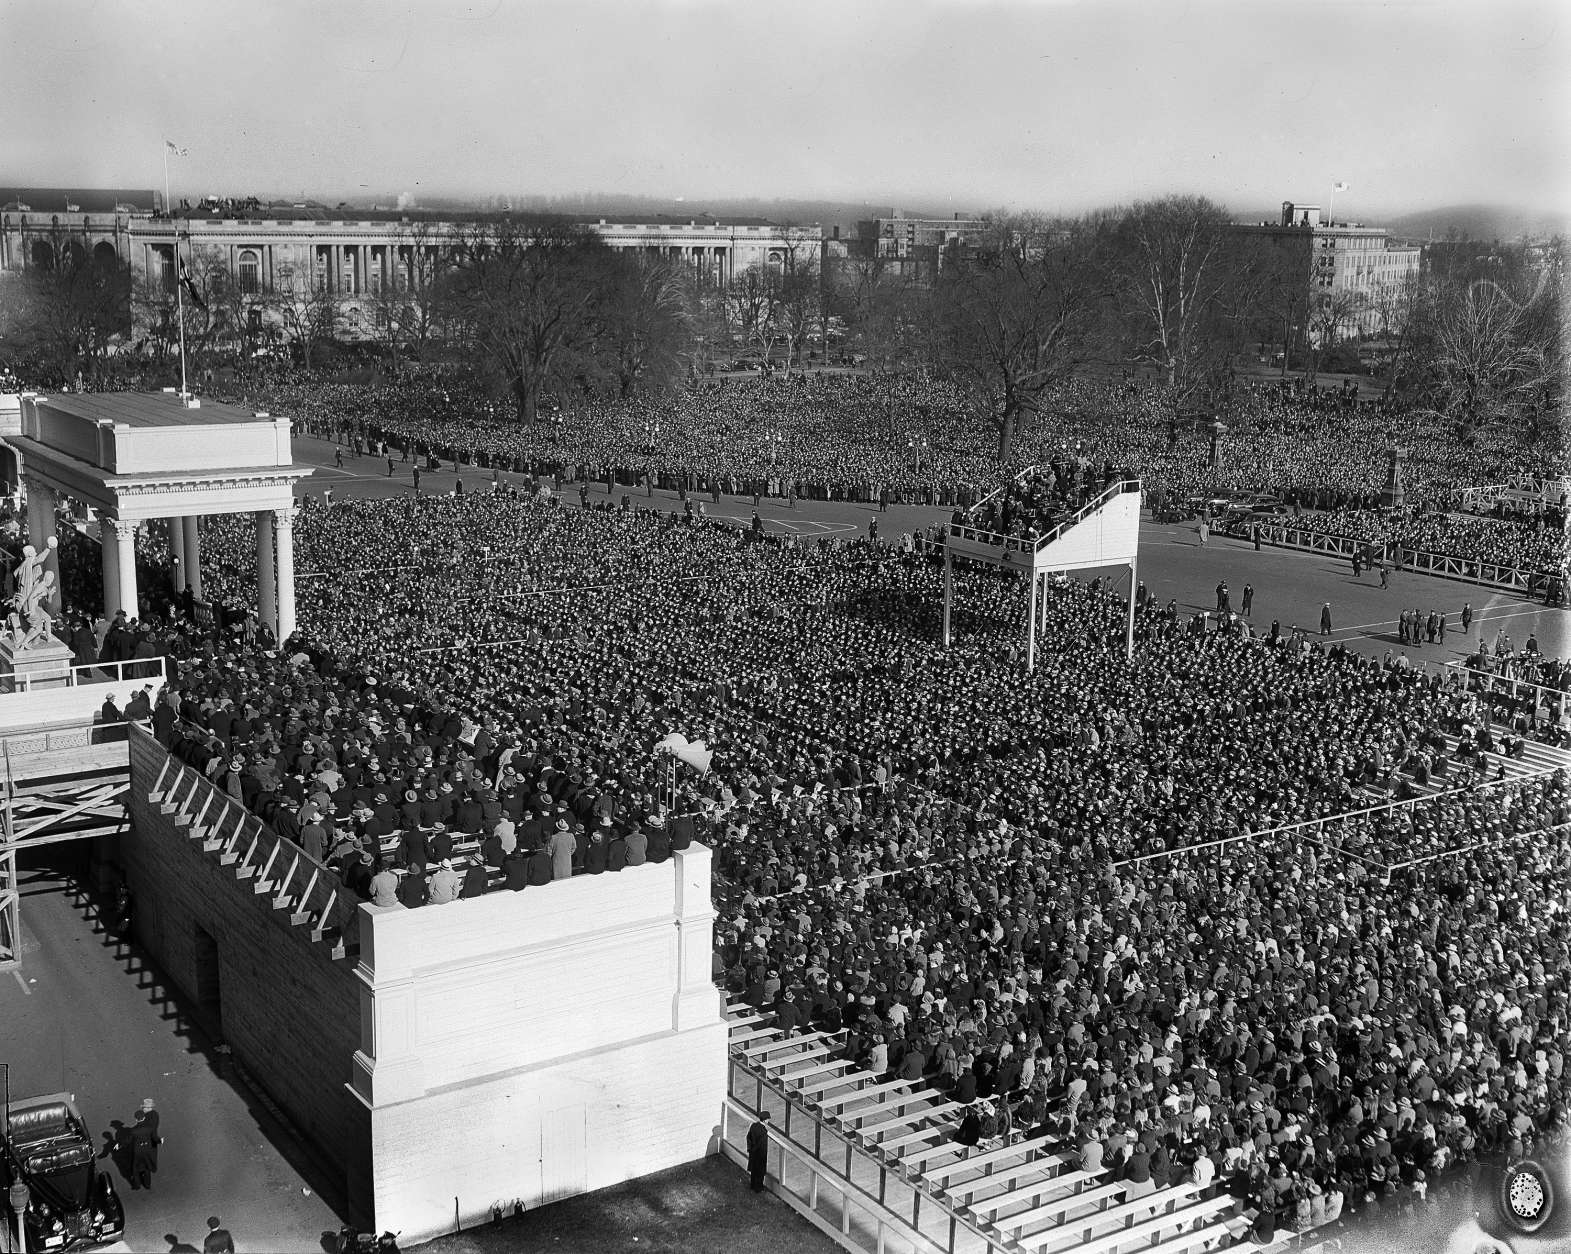 A crowd estimated at 75,000 people jams Capitol Plaza in Washington, Jan. 20, 1941, for the third term inauguration of President Franklin Delano Roosevelt, as the president was making his inaugural address. (AP Photo)